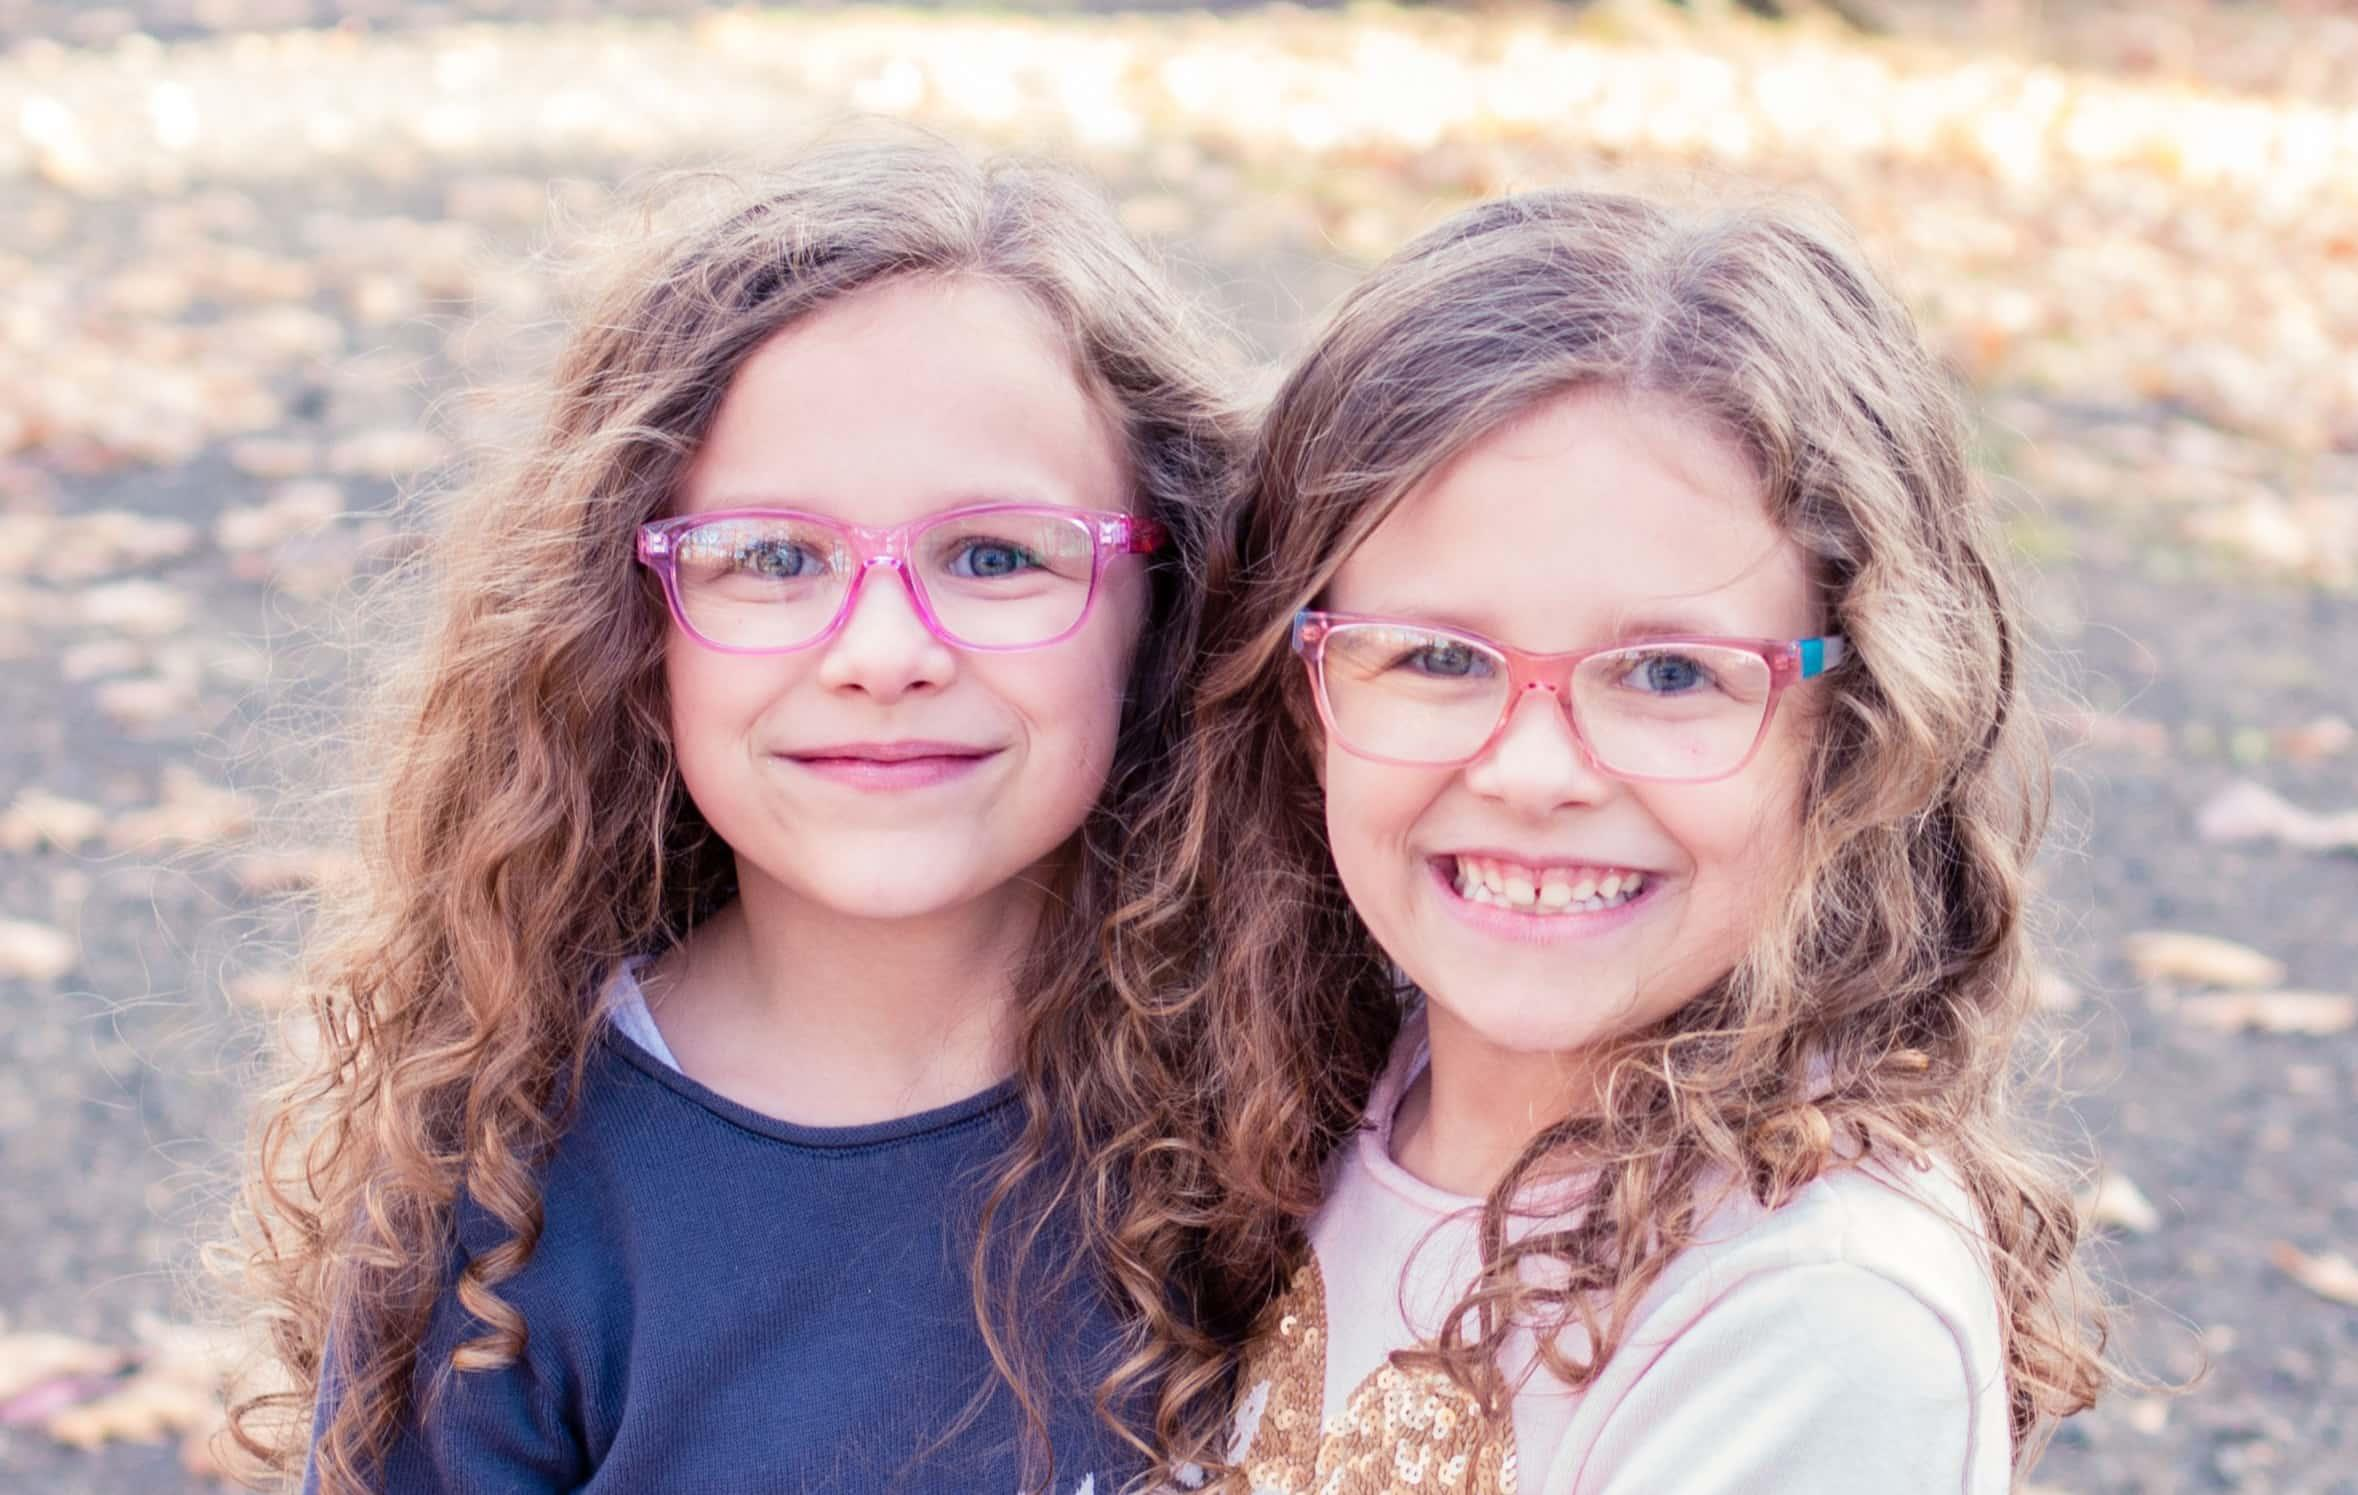 Children's eye exams and frame fittings